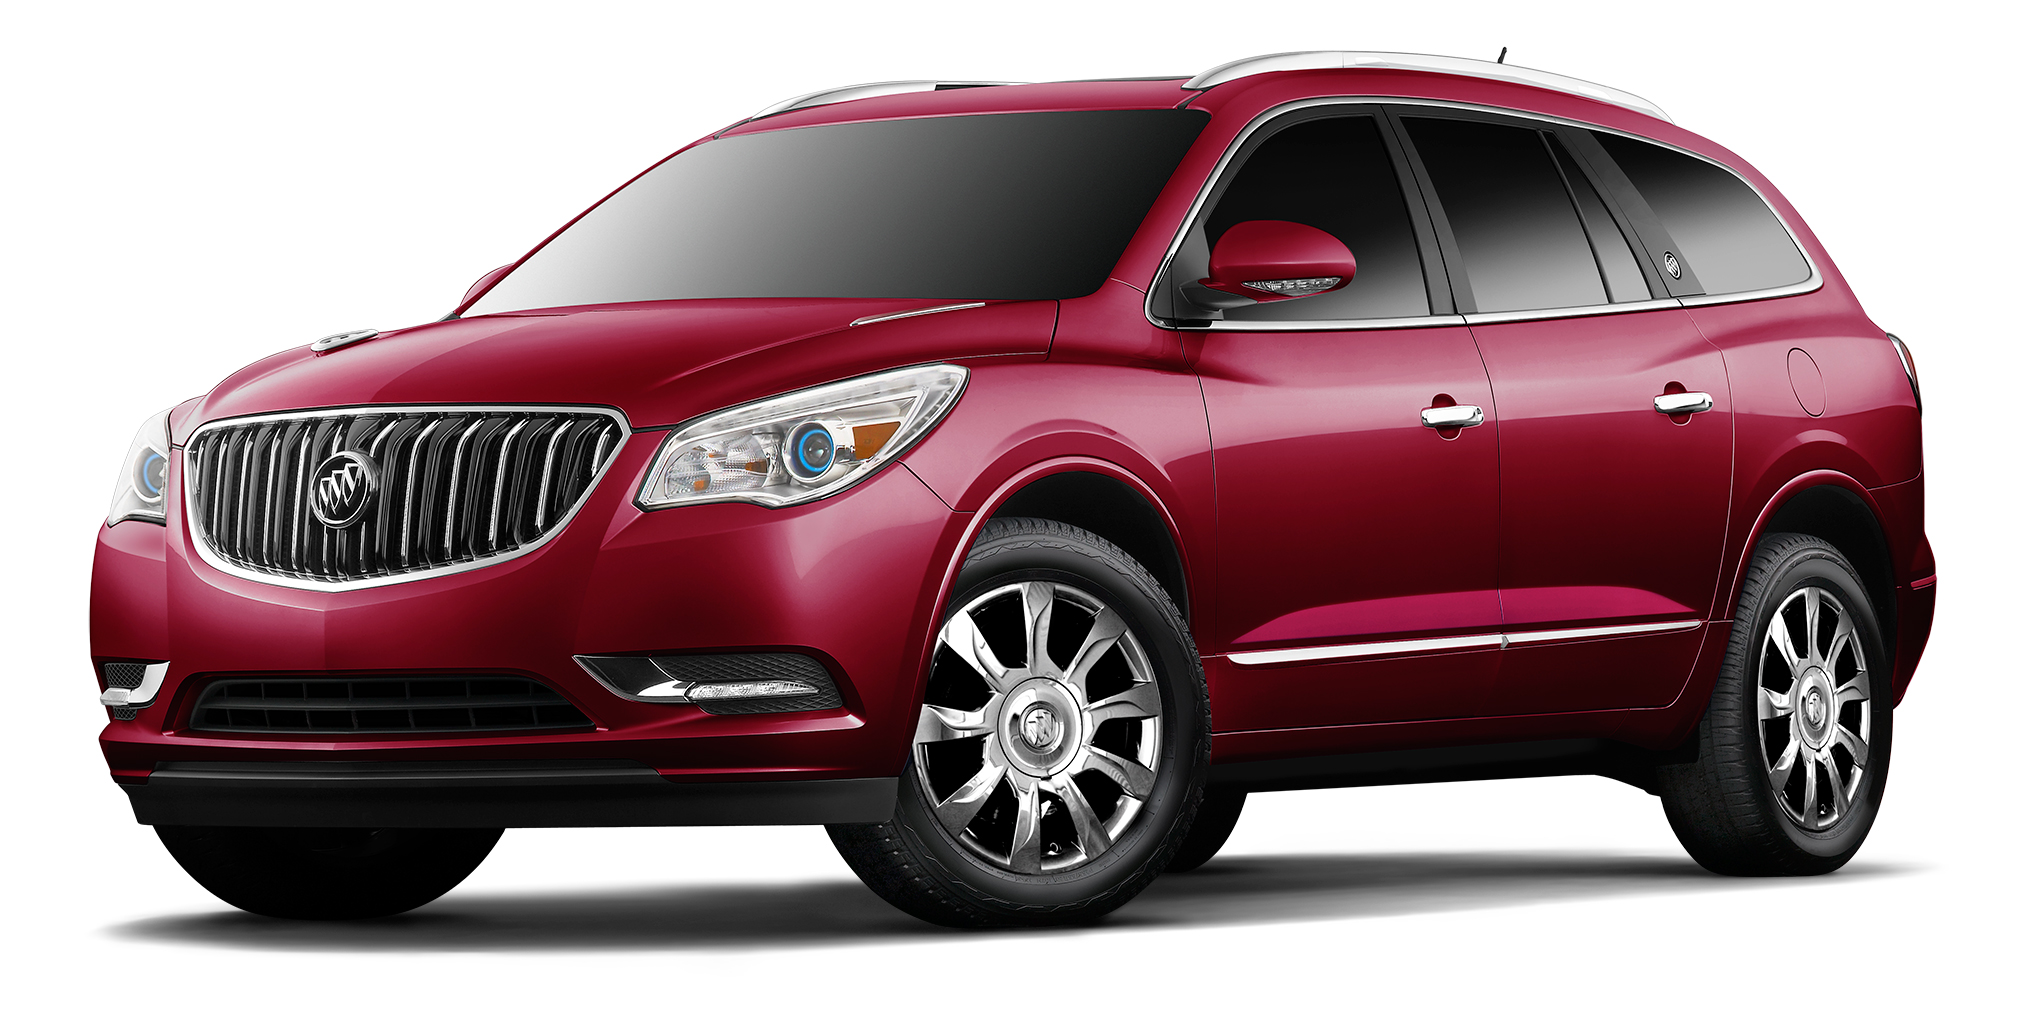 2017 Buick Enclave Red